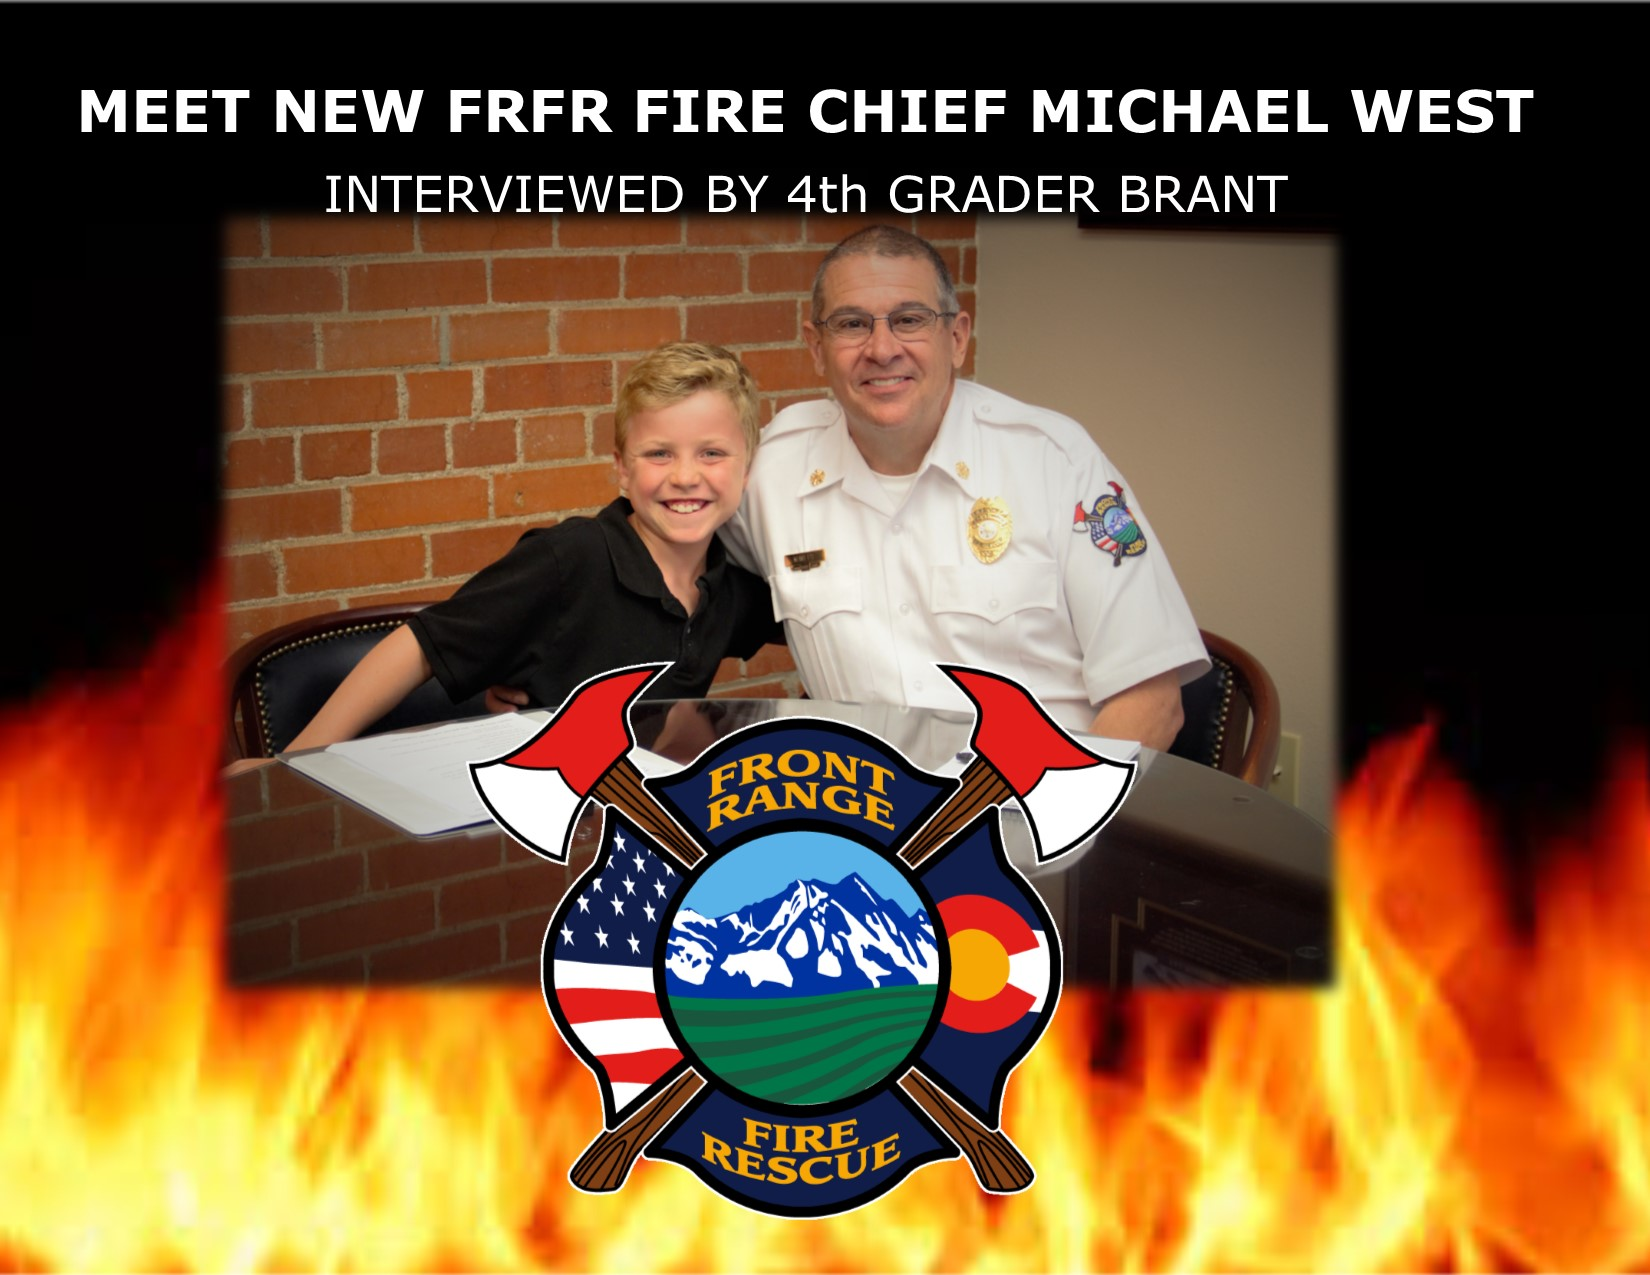 Fire Chief Michael West answers Brant;s questions about what it is like to be a Fire Chief